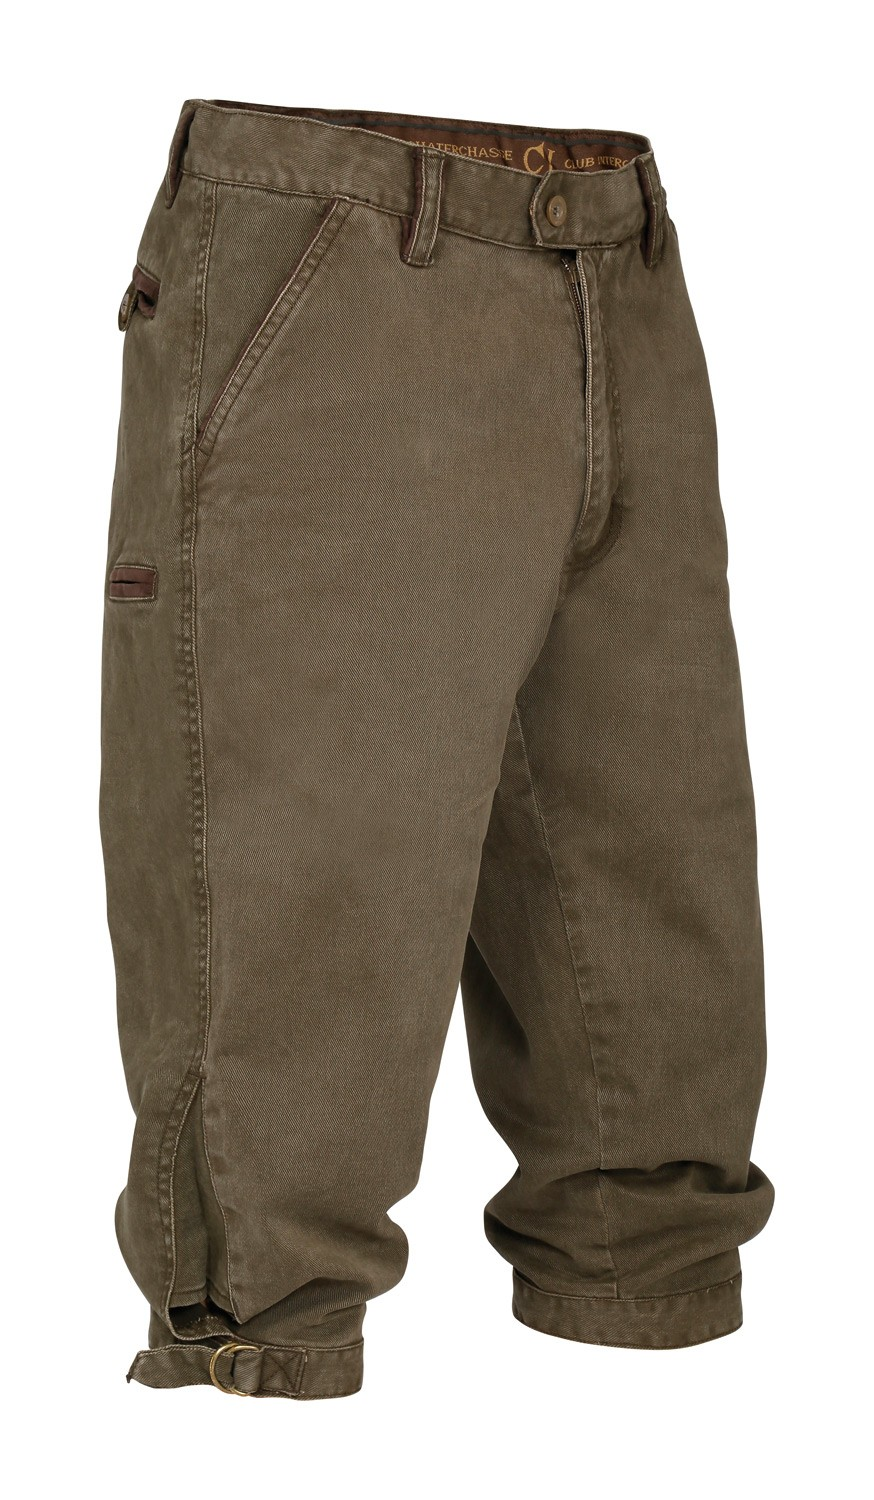 Pantalon-de-chasse-Club-Interchasse-Lenny miniature 3